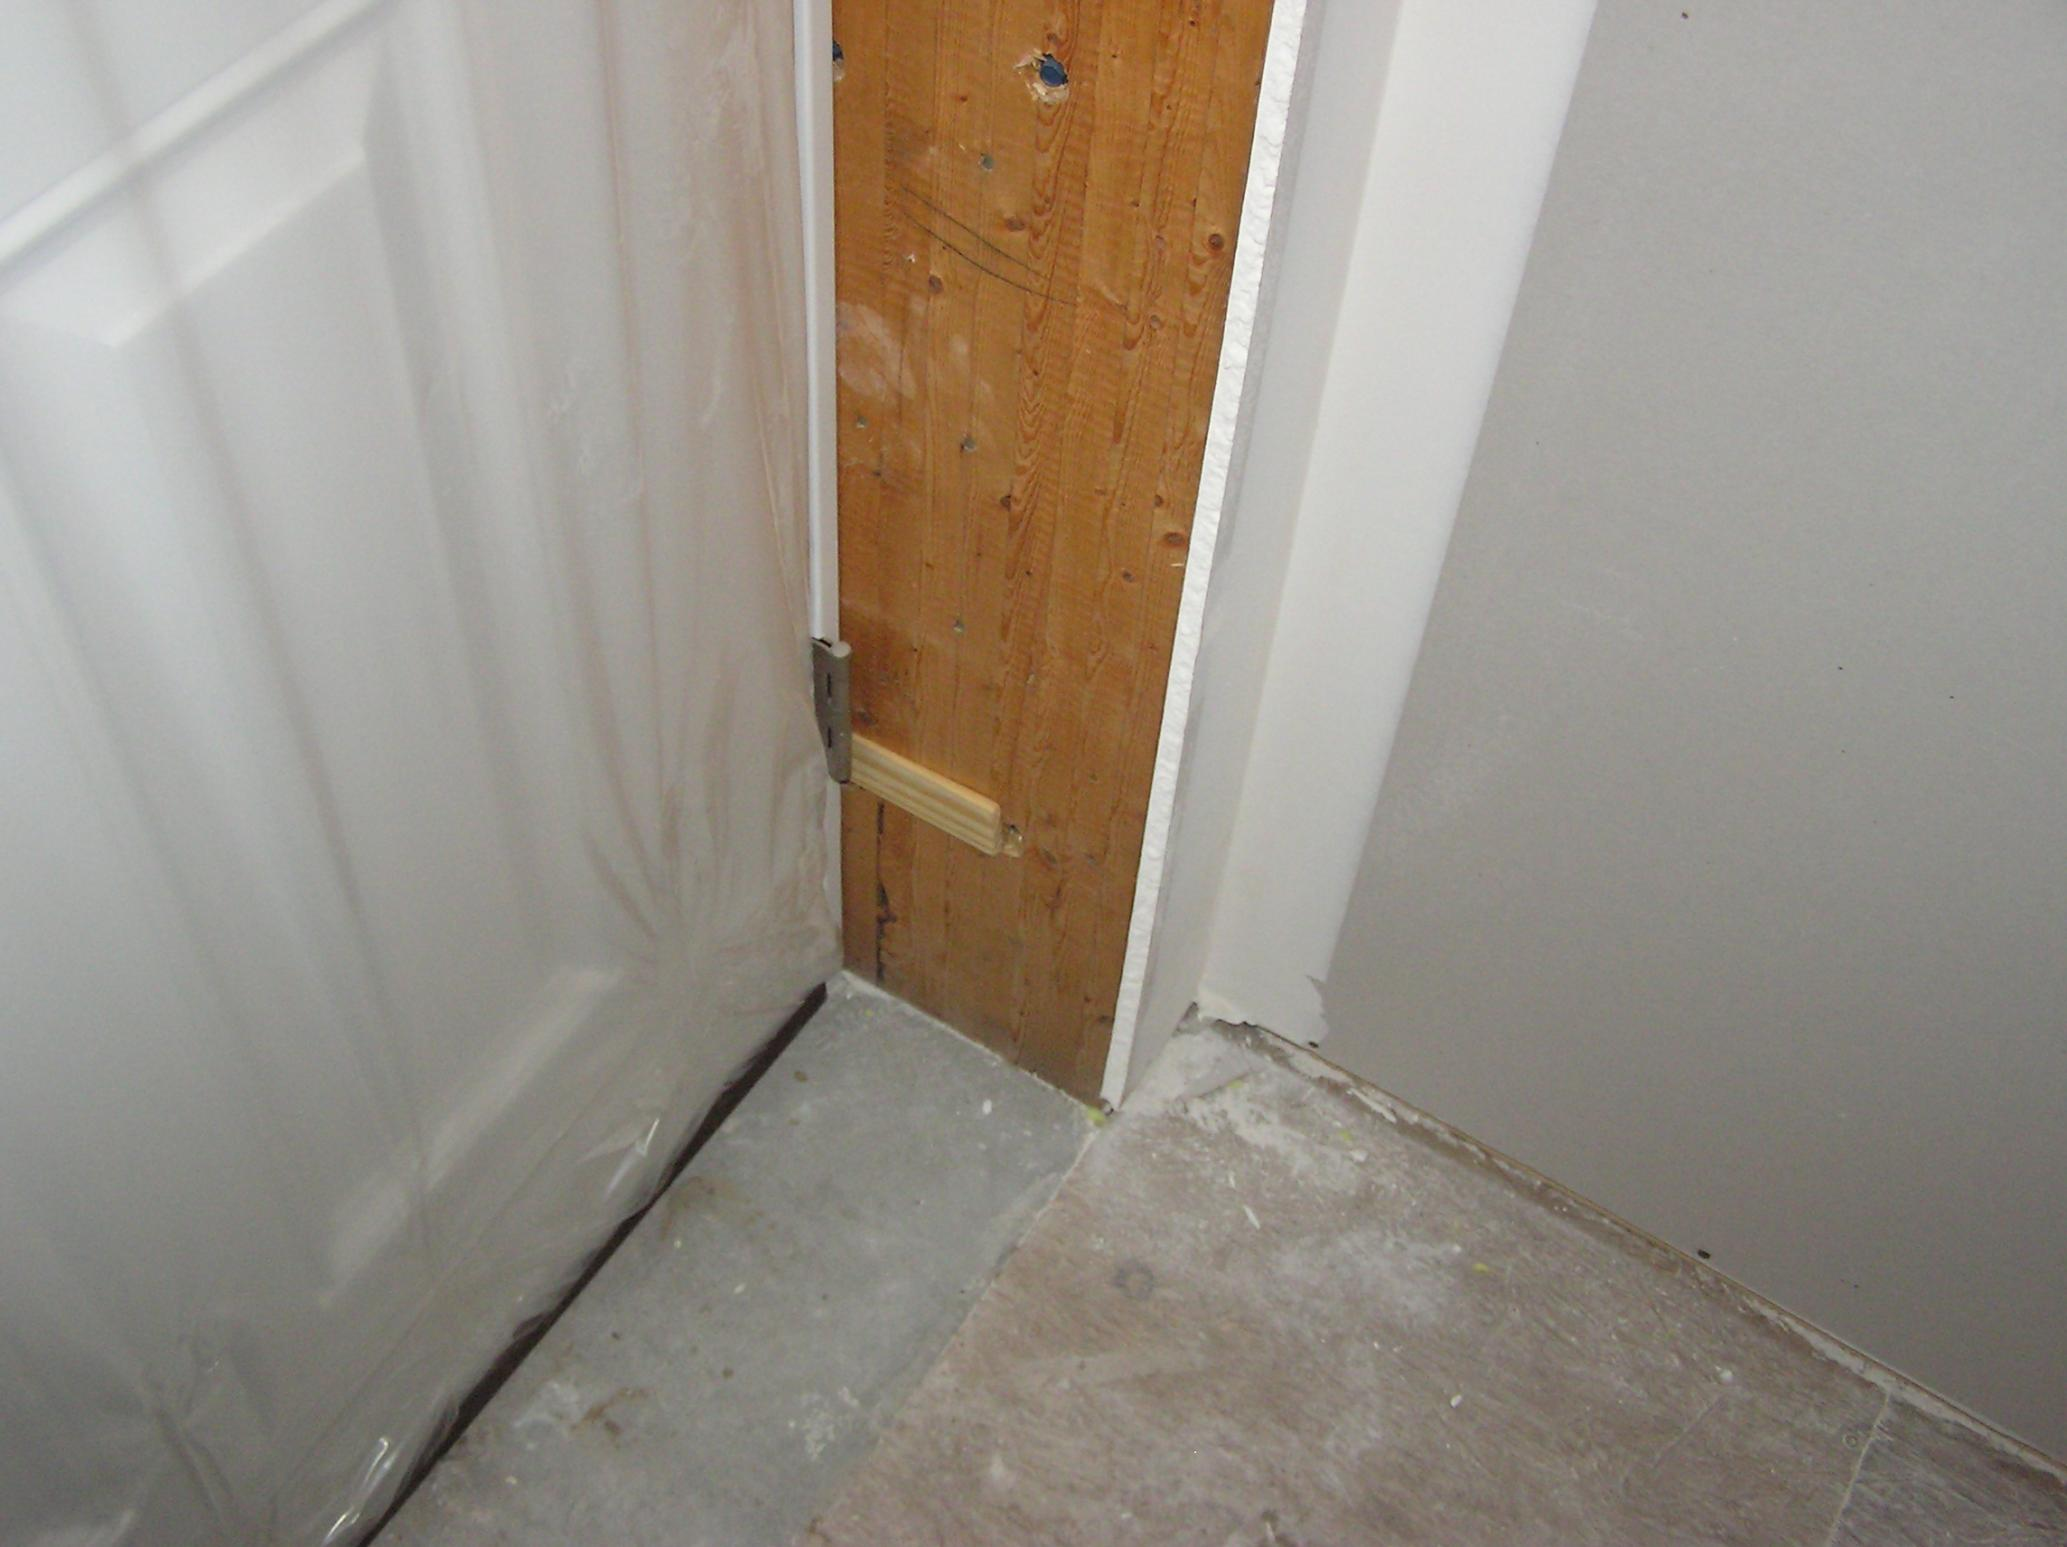 Extension Jamb Dilema Finish Carpentry Contractor Talk